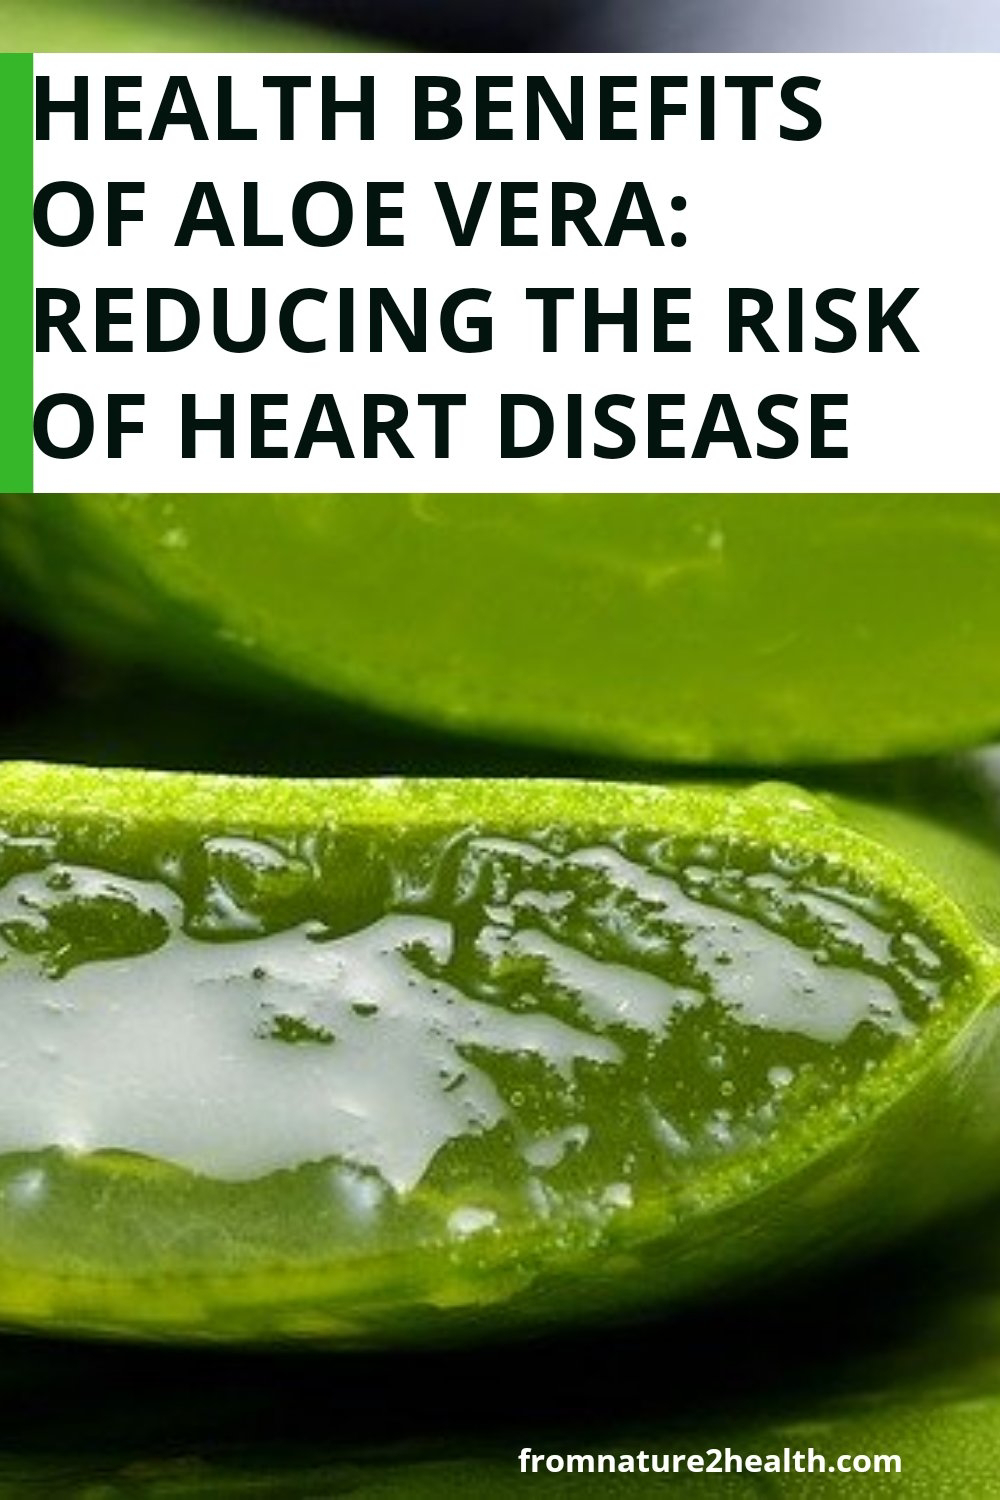 Health Benefits of Aloe Vera: Reducing the Risk of Heart Disease